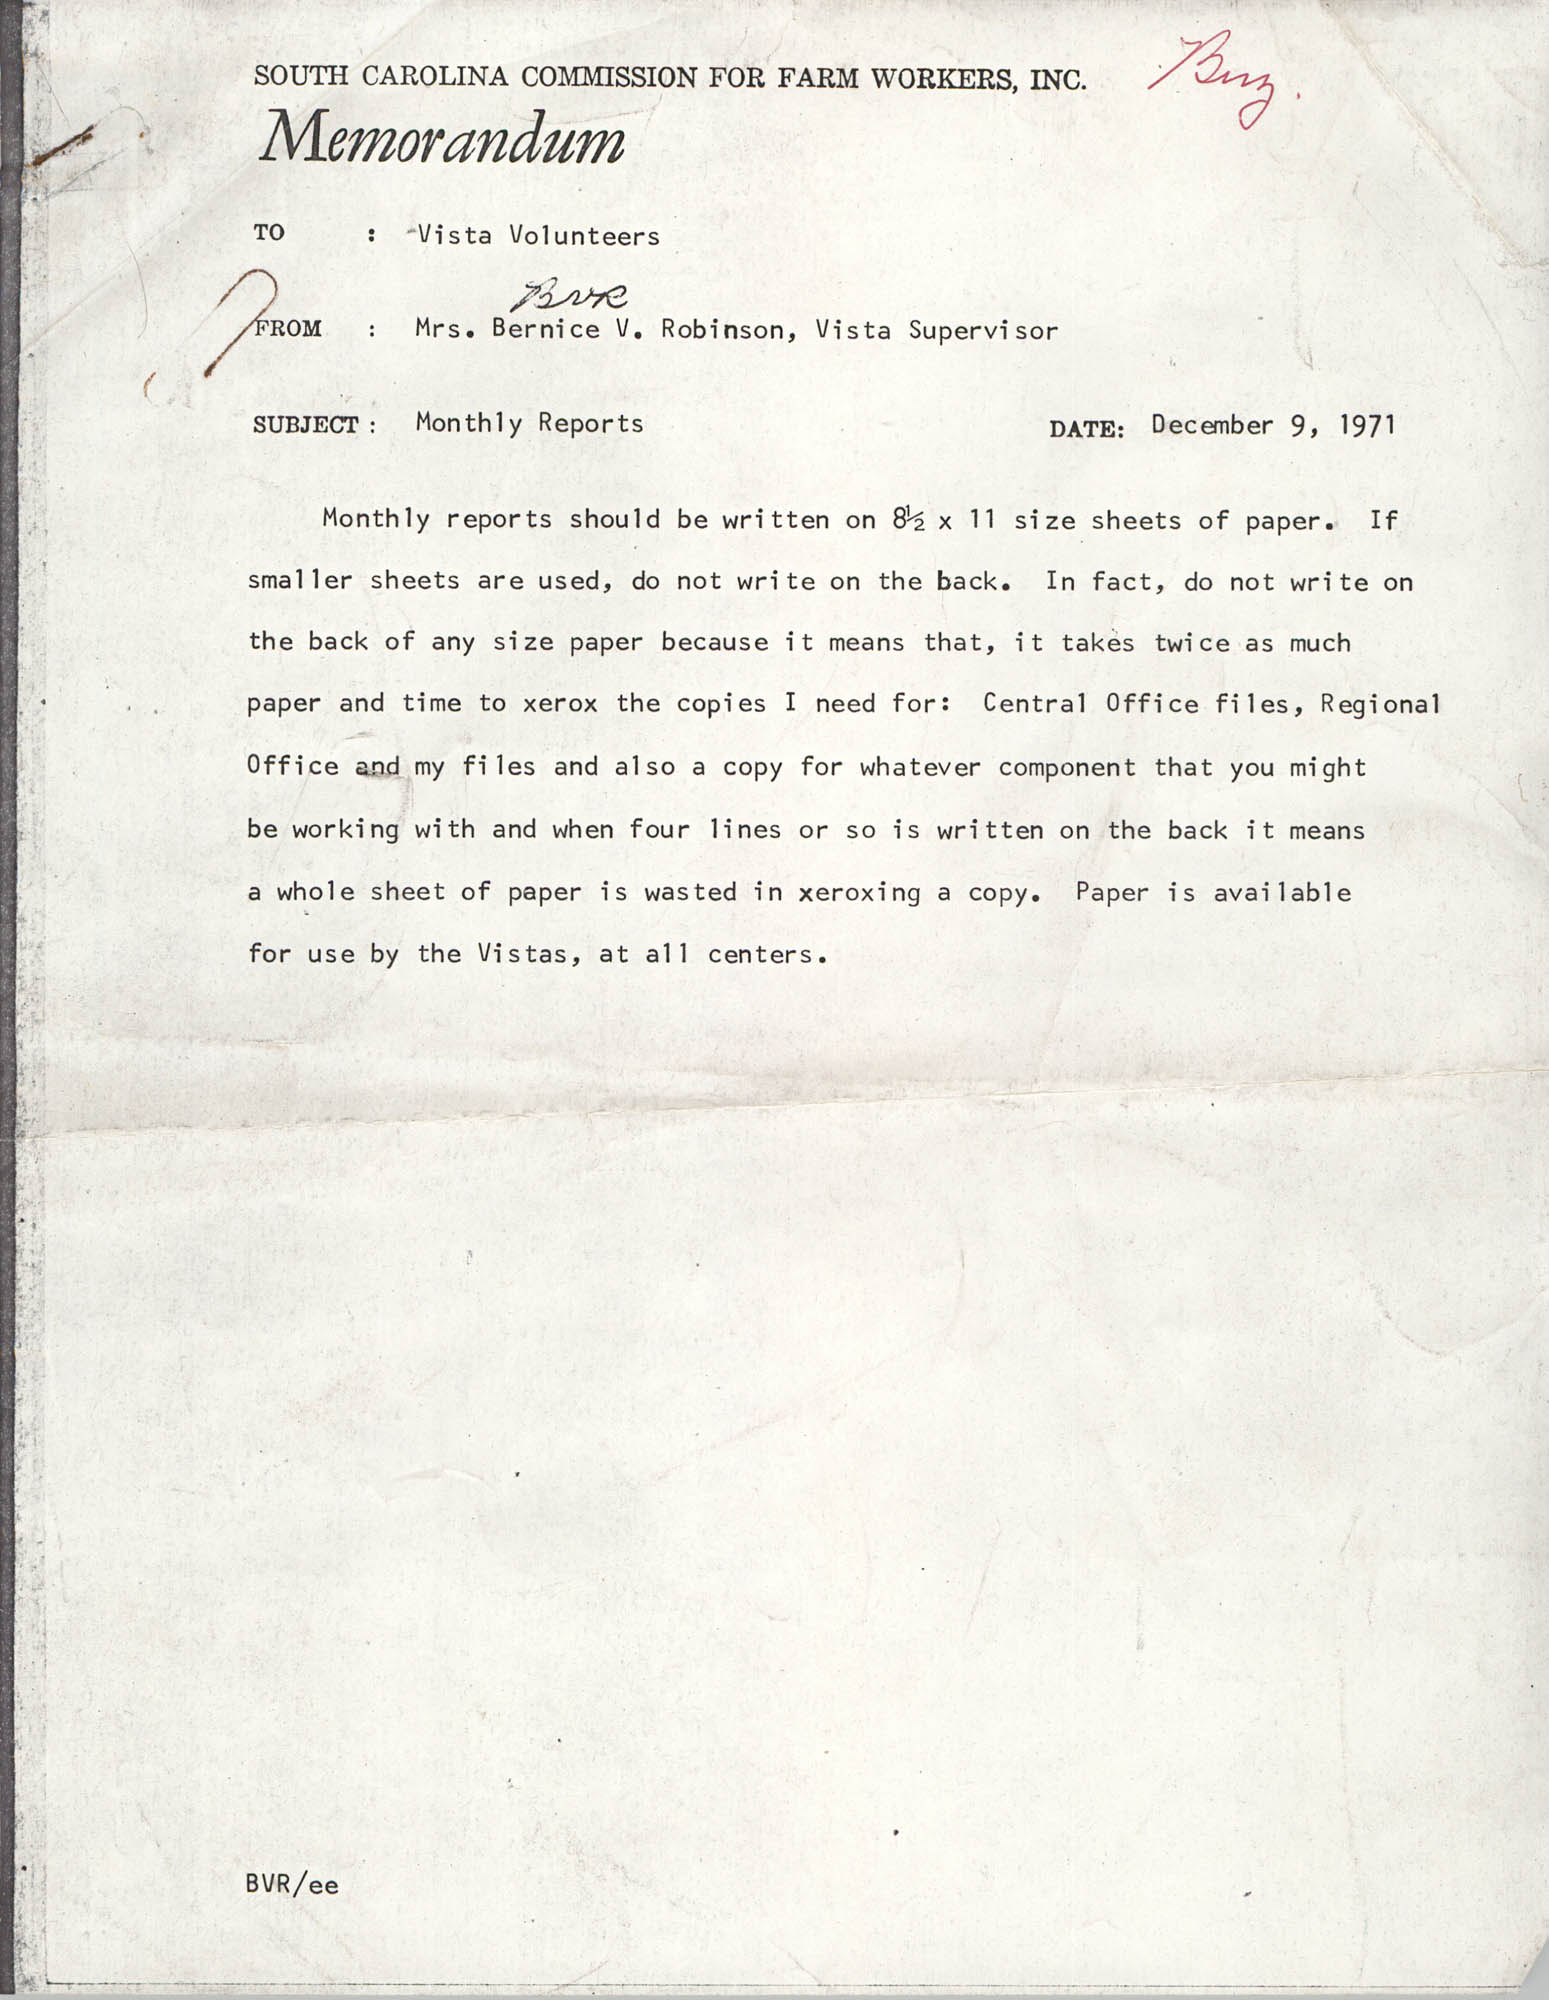 Memorandum from Bernice V. Robinson to VISTA Volunteers, December 9, 1971